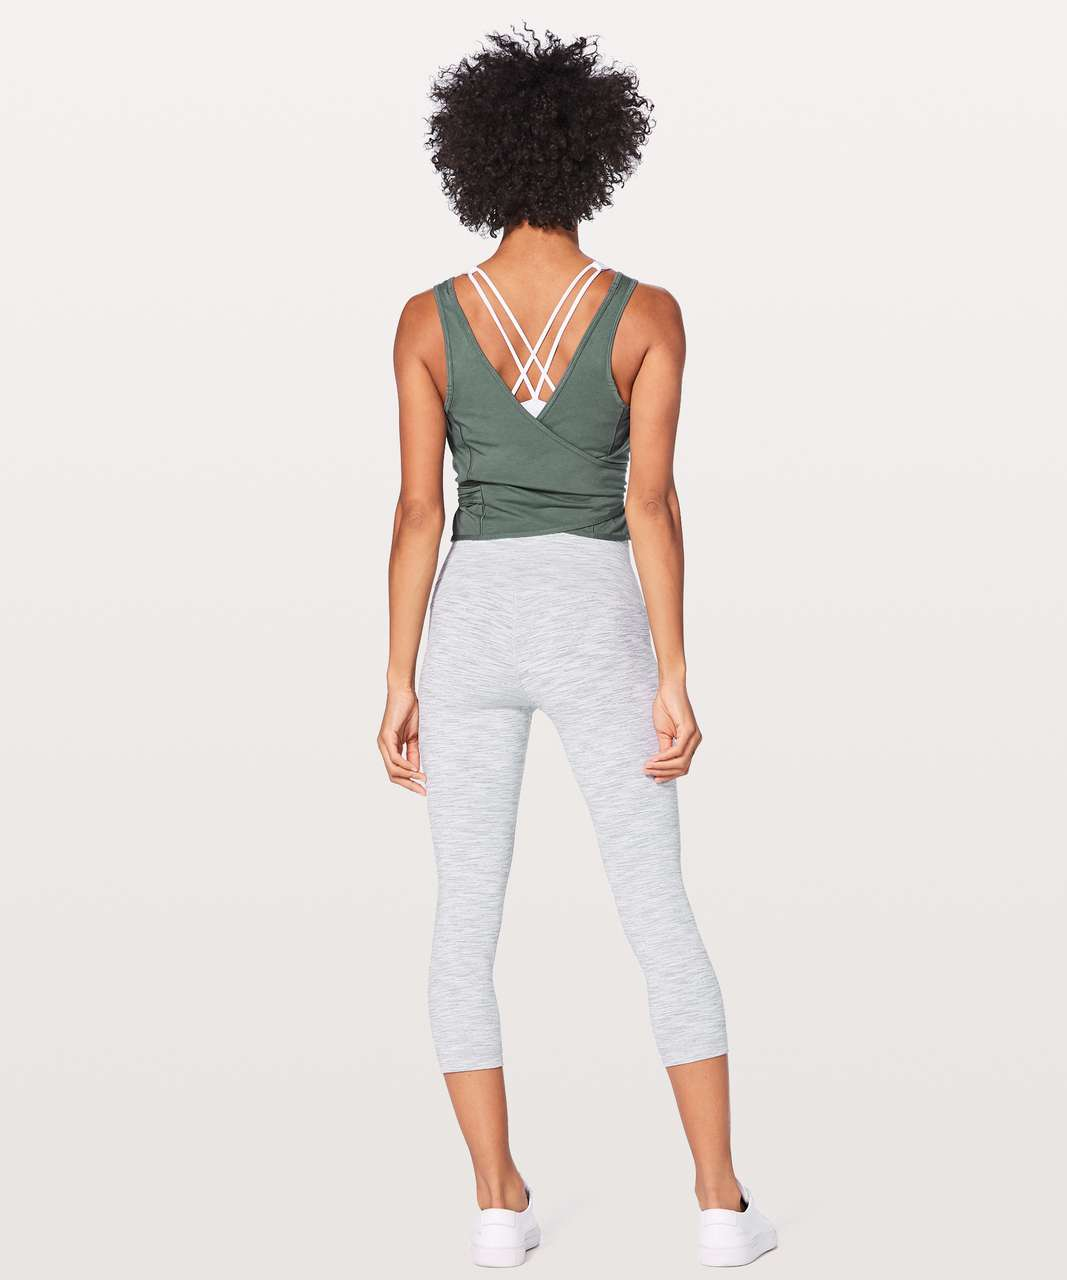 Lululemon Its A Tie Tank - Graphite Green